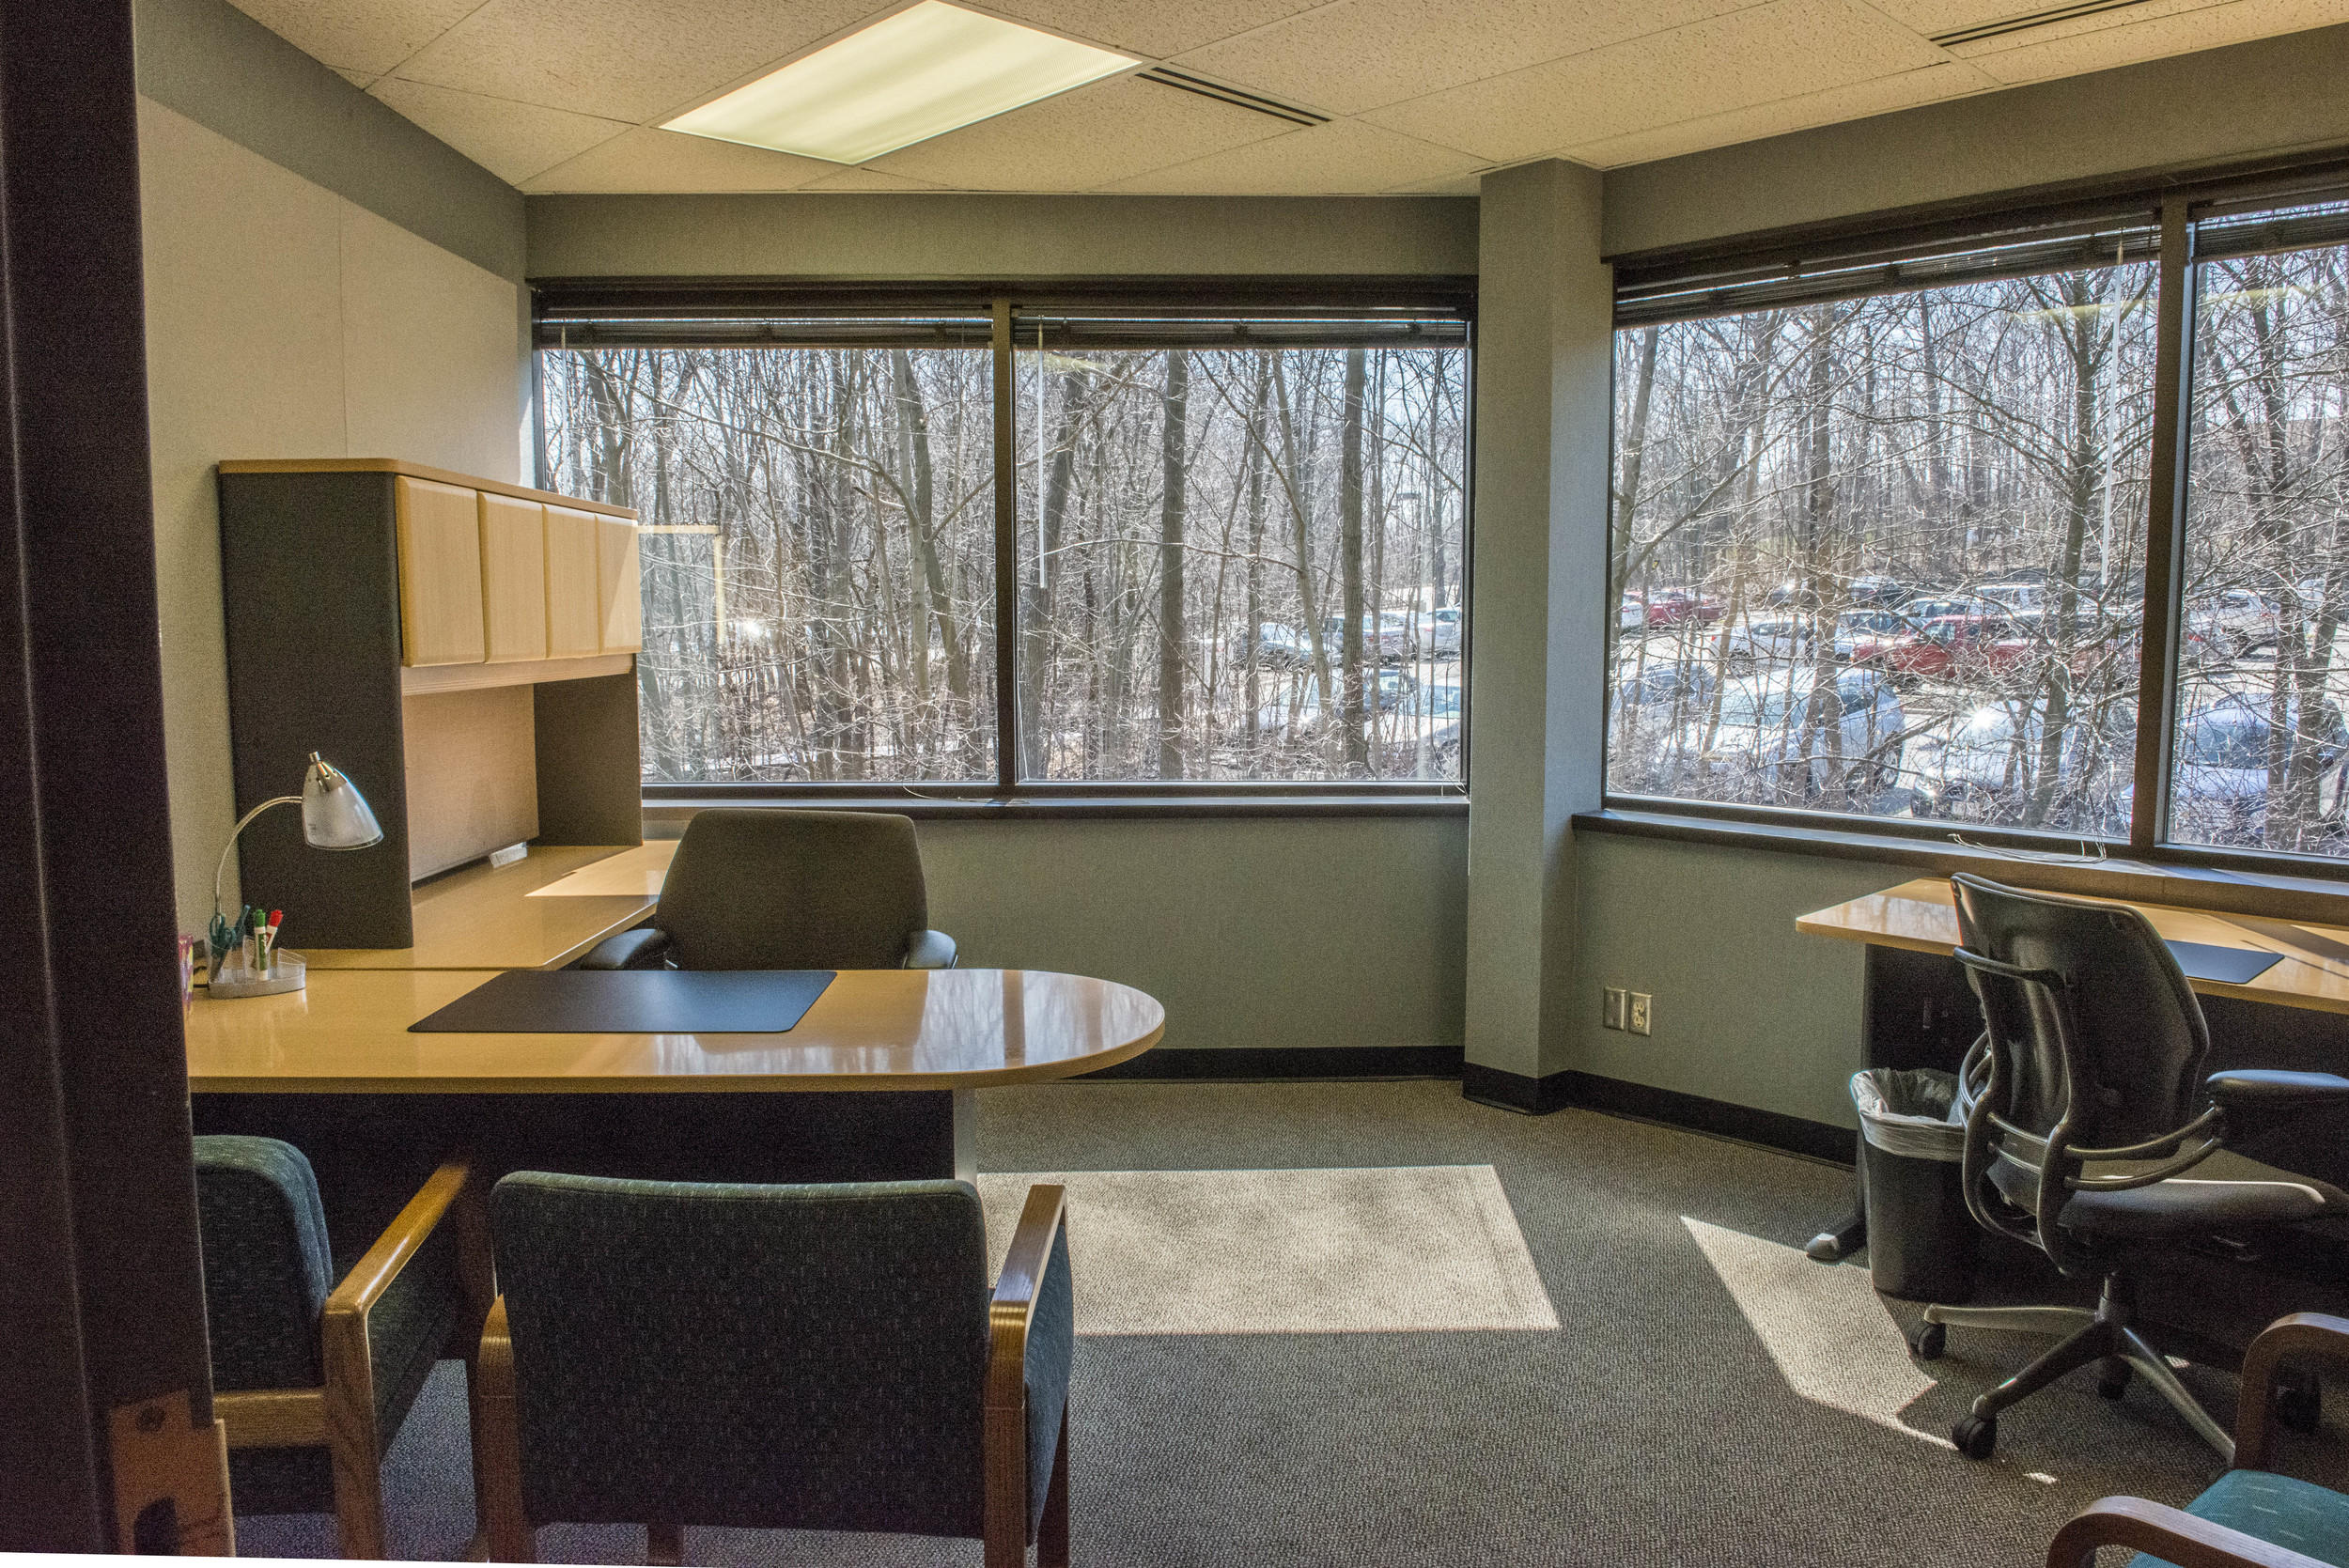 Shared Office Space in Brookfield, WI